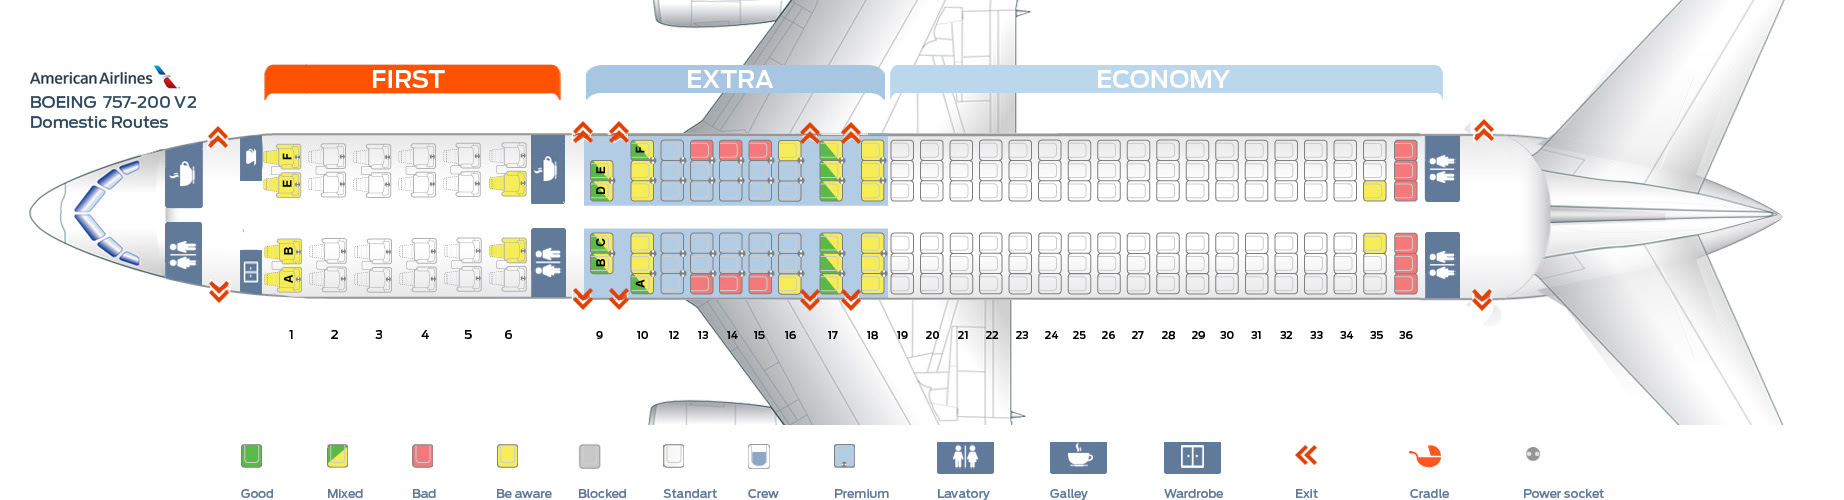 757 Seat Map | Bedroom 2018 Delta Seat Map on